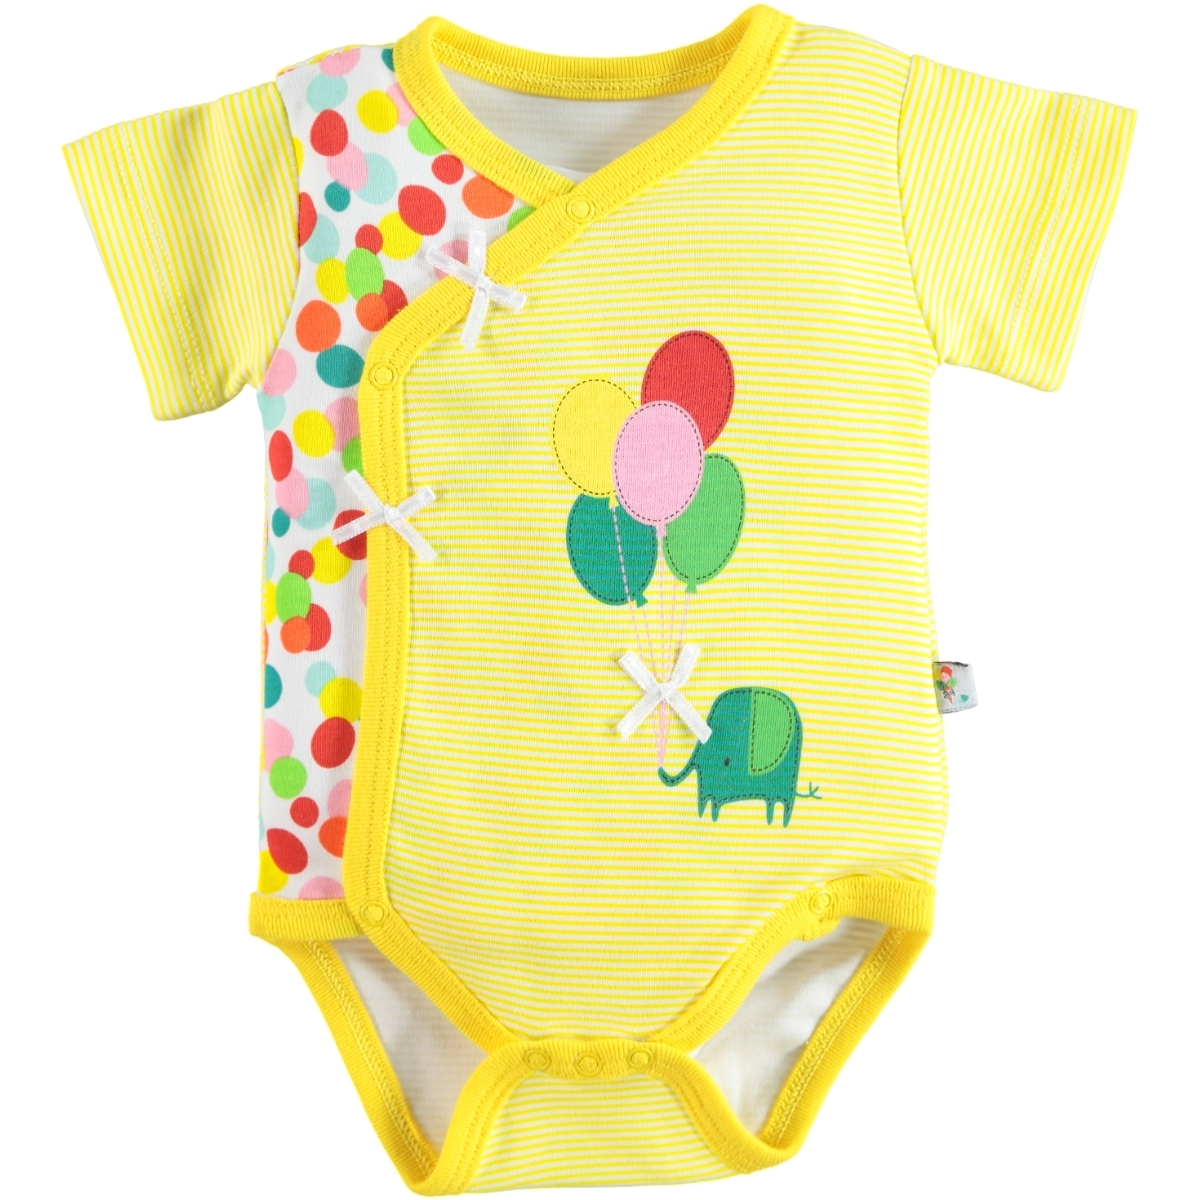 Babycool 1-6 Months Baby Girl Yellow Bodysuit With Snaps